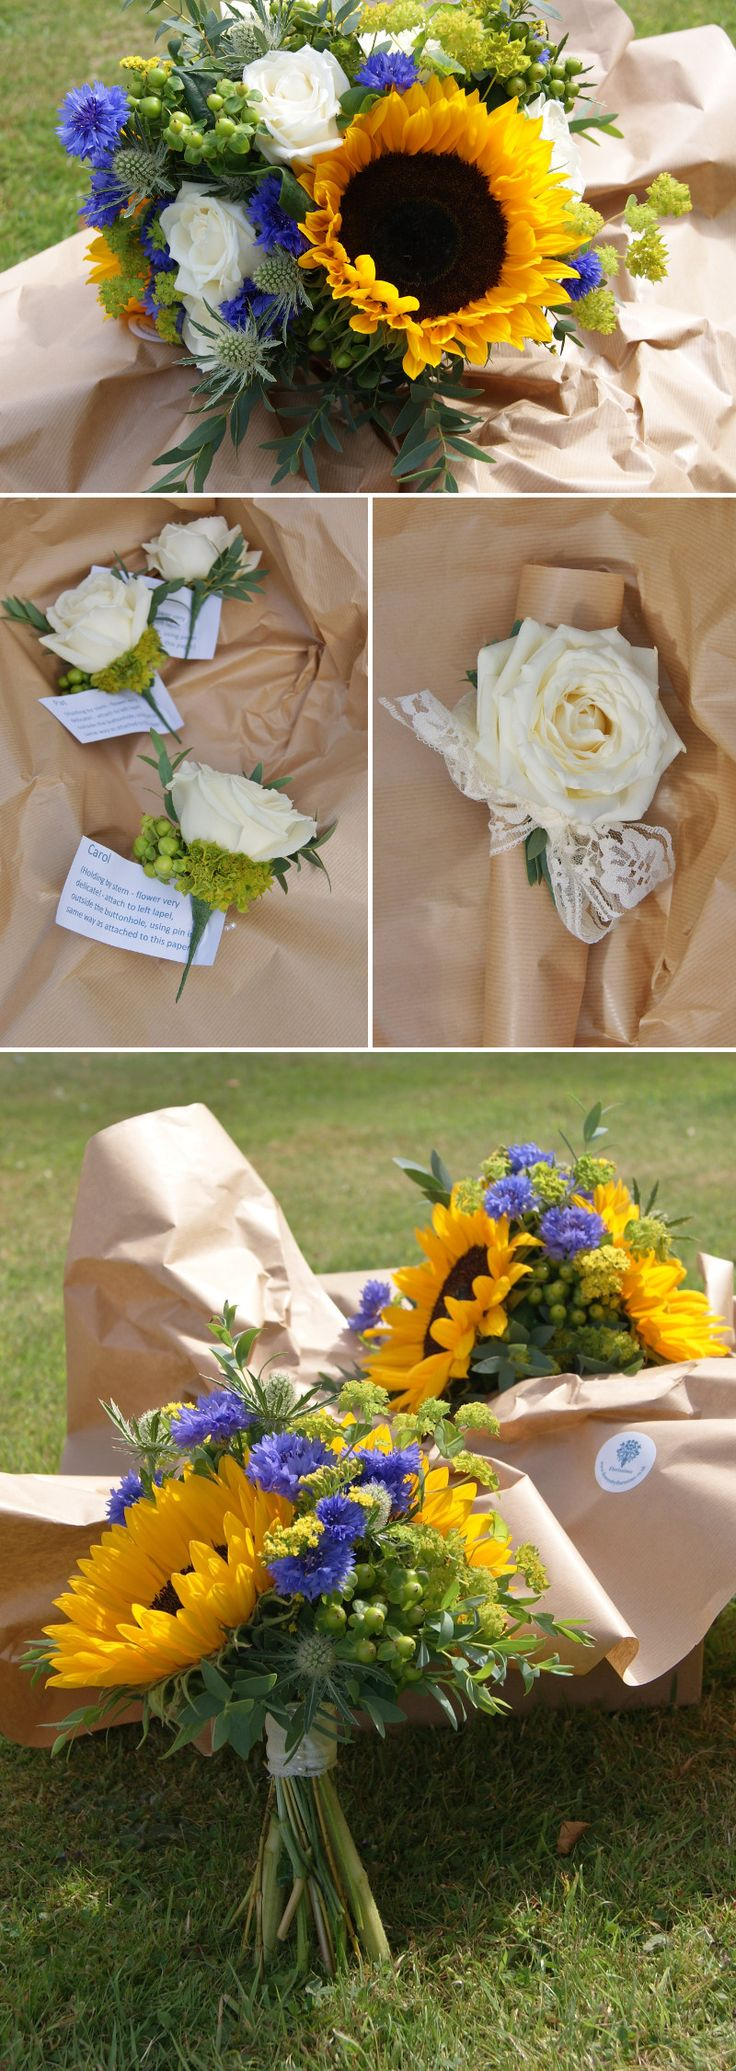 Florissimo, Shropshire - Flowers for weddings, events and businesses in Shropshire and beyondBright summery hand-tied bridal bouquet of yellow sunflower, blue cornflower, blue eryngium thistle, green hypericum berries, green bupleurum and white avalanche roses.  Wedding buttonholes of white avalanche rose, green hypericum berries and green bupleurum. Lace wrist corsage with white avalanche rose. Great for an informal cottage garden feel.